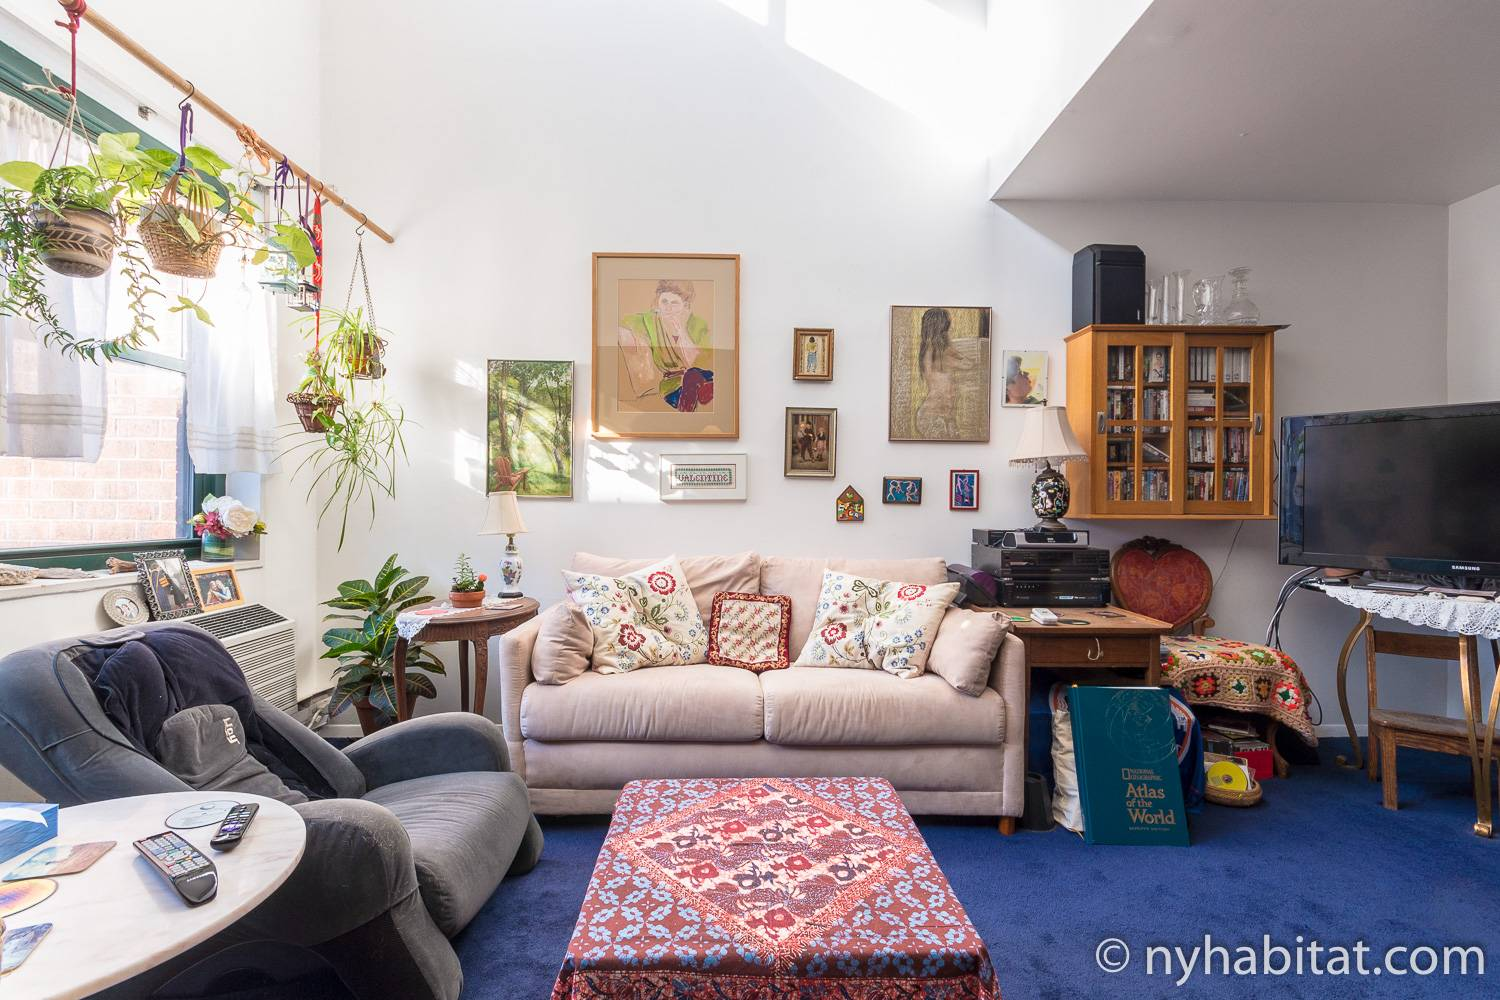 Image of living area in NY-17088 with sofa and artwork.